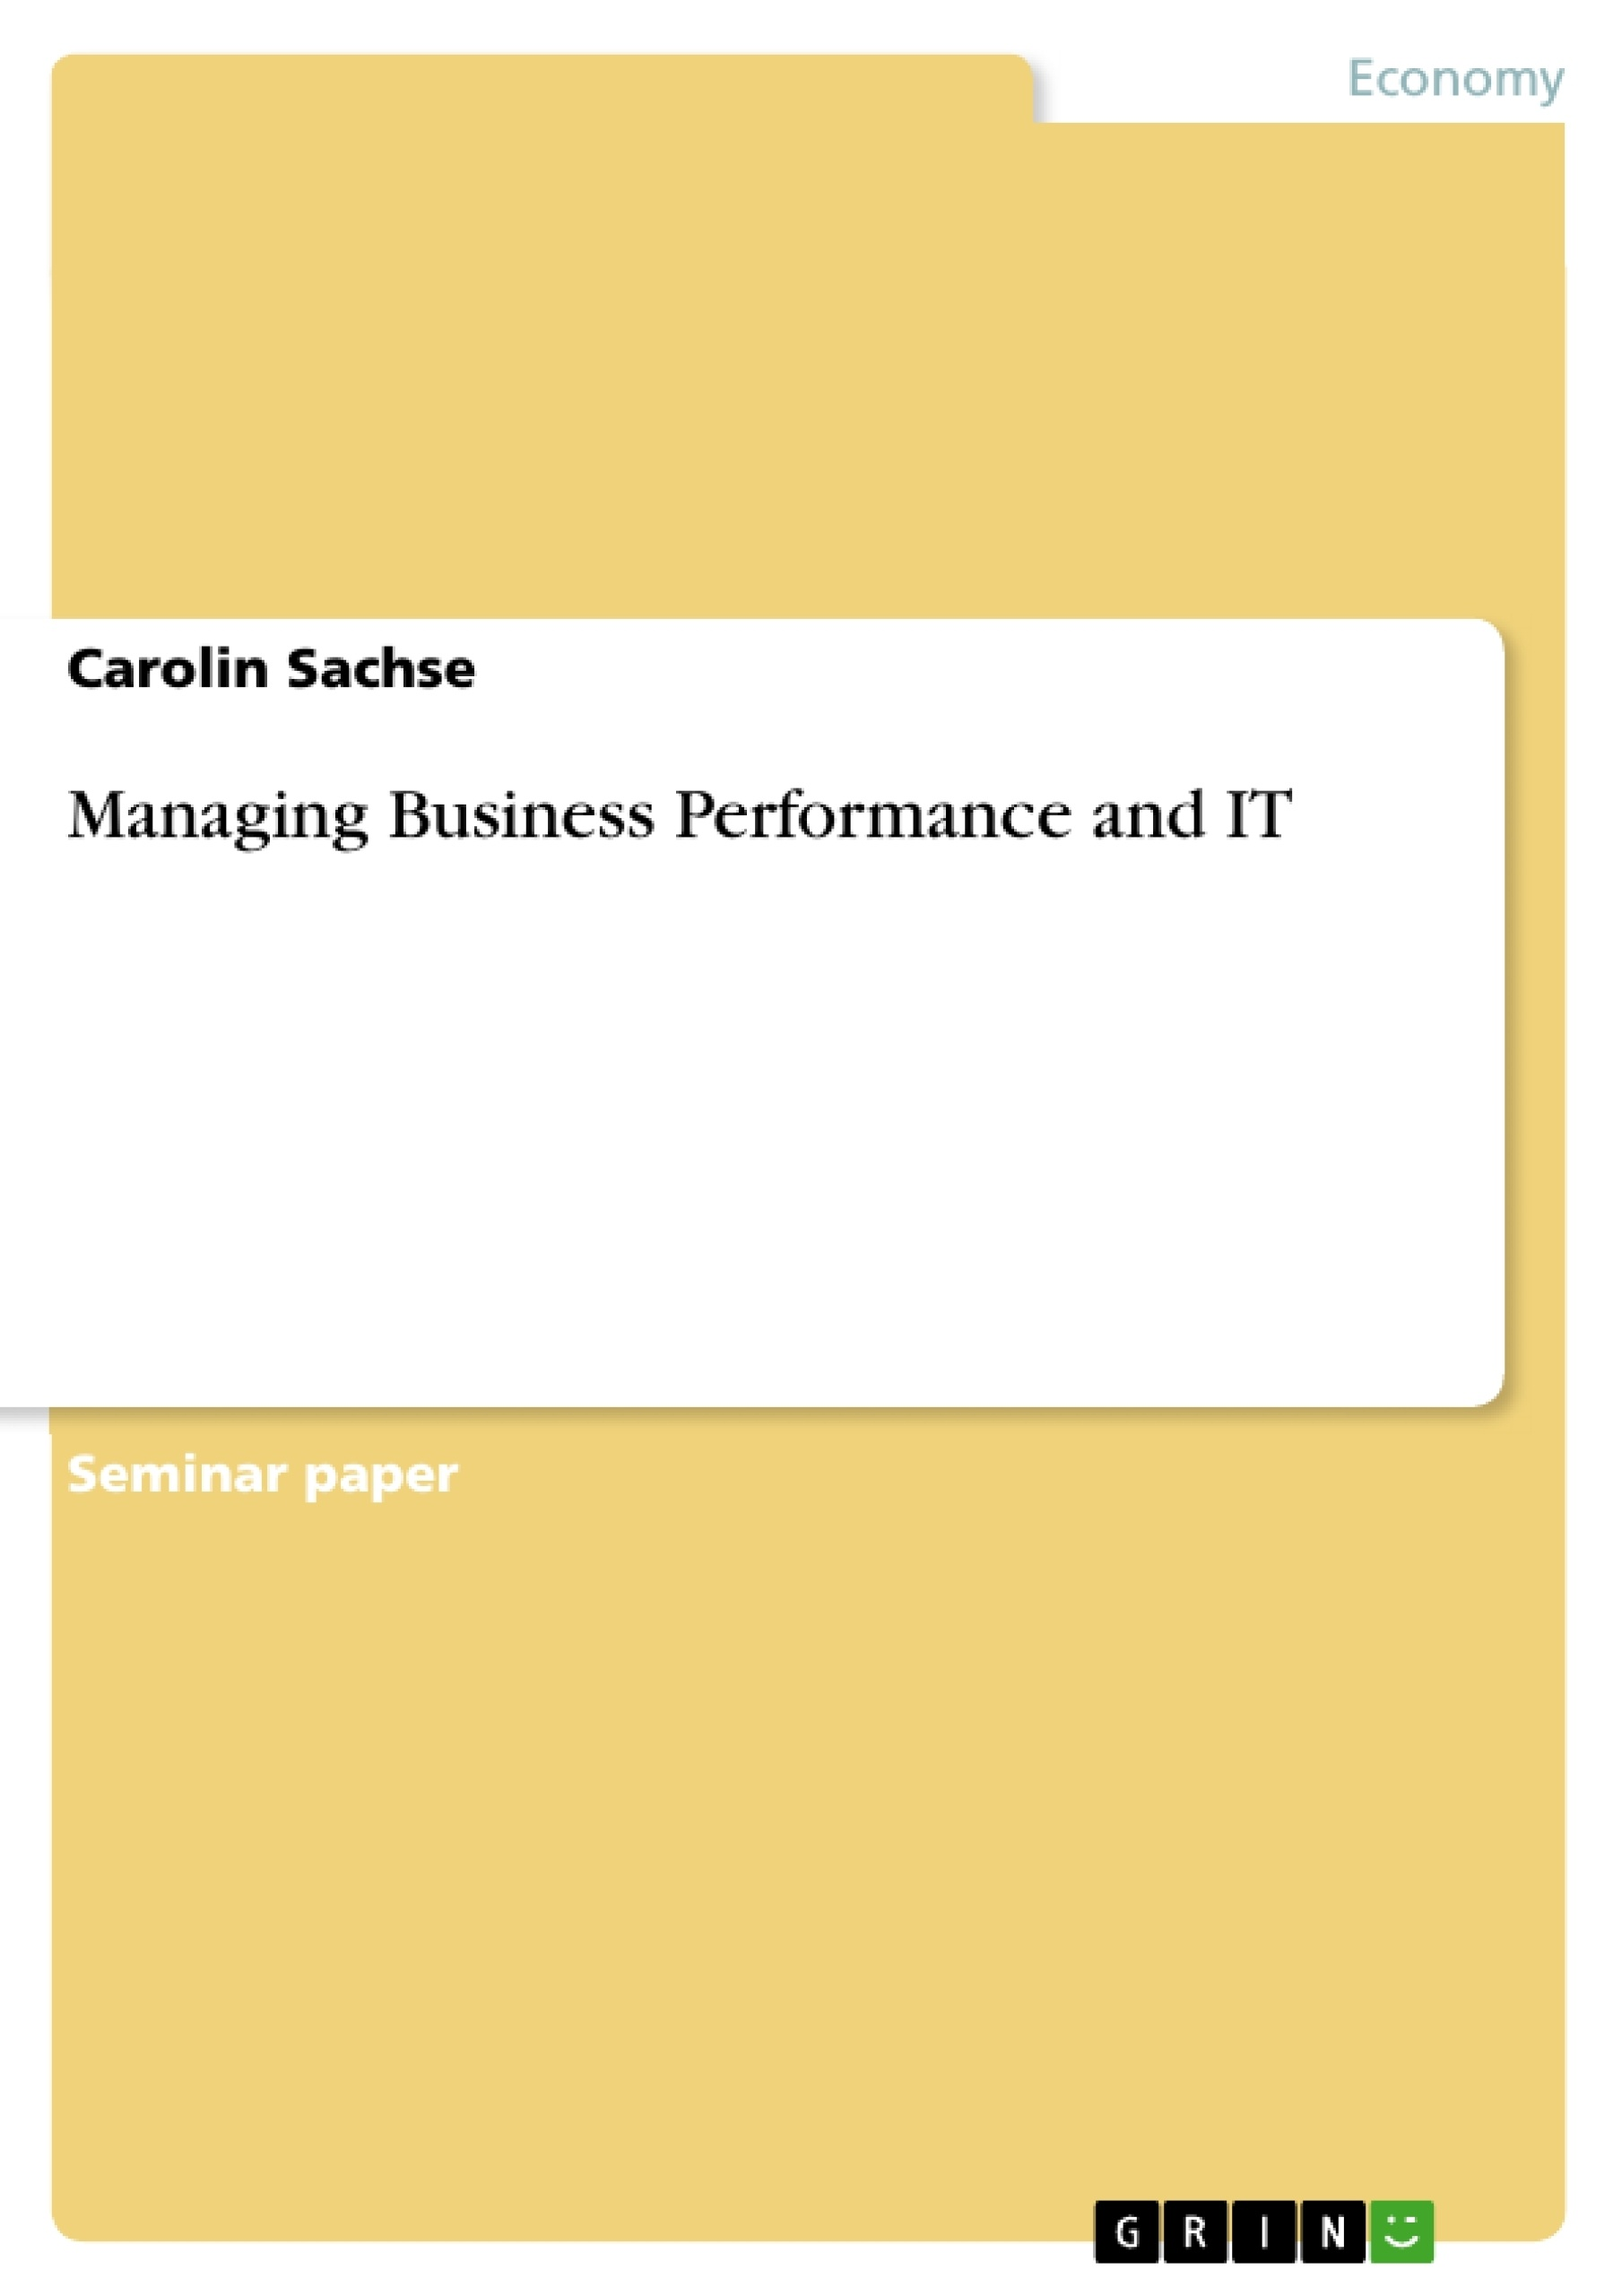 Title: Managing Business Performance and IT